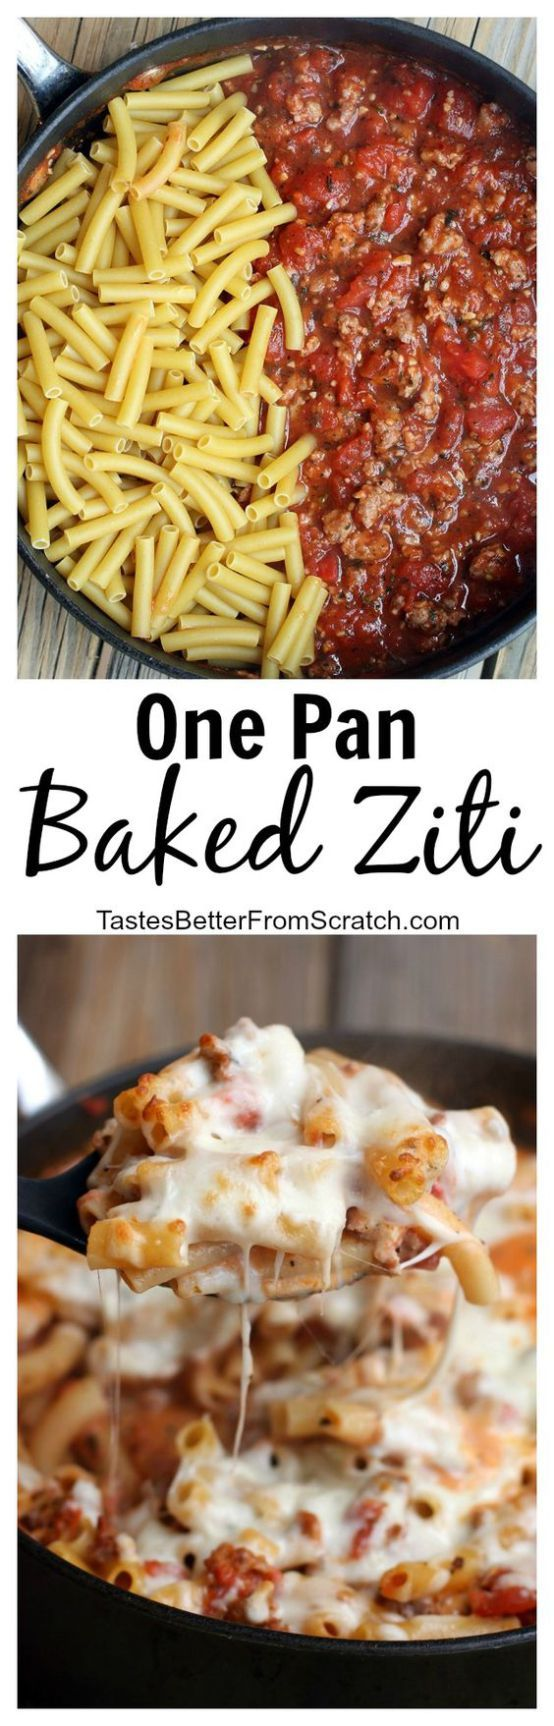 One Pan Baked Ziti Recipe | Tastes Better From Scratch - The Best Easy One Pot Pasta Family Dinner Recipes #onepotpasta #onepotmeals #pastarecipes #onepotpastarecipes #onepotrecipes #mealprep #pasta #simplefamilymeals #simplefamilyrecipes #simplerecipes